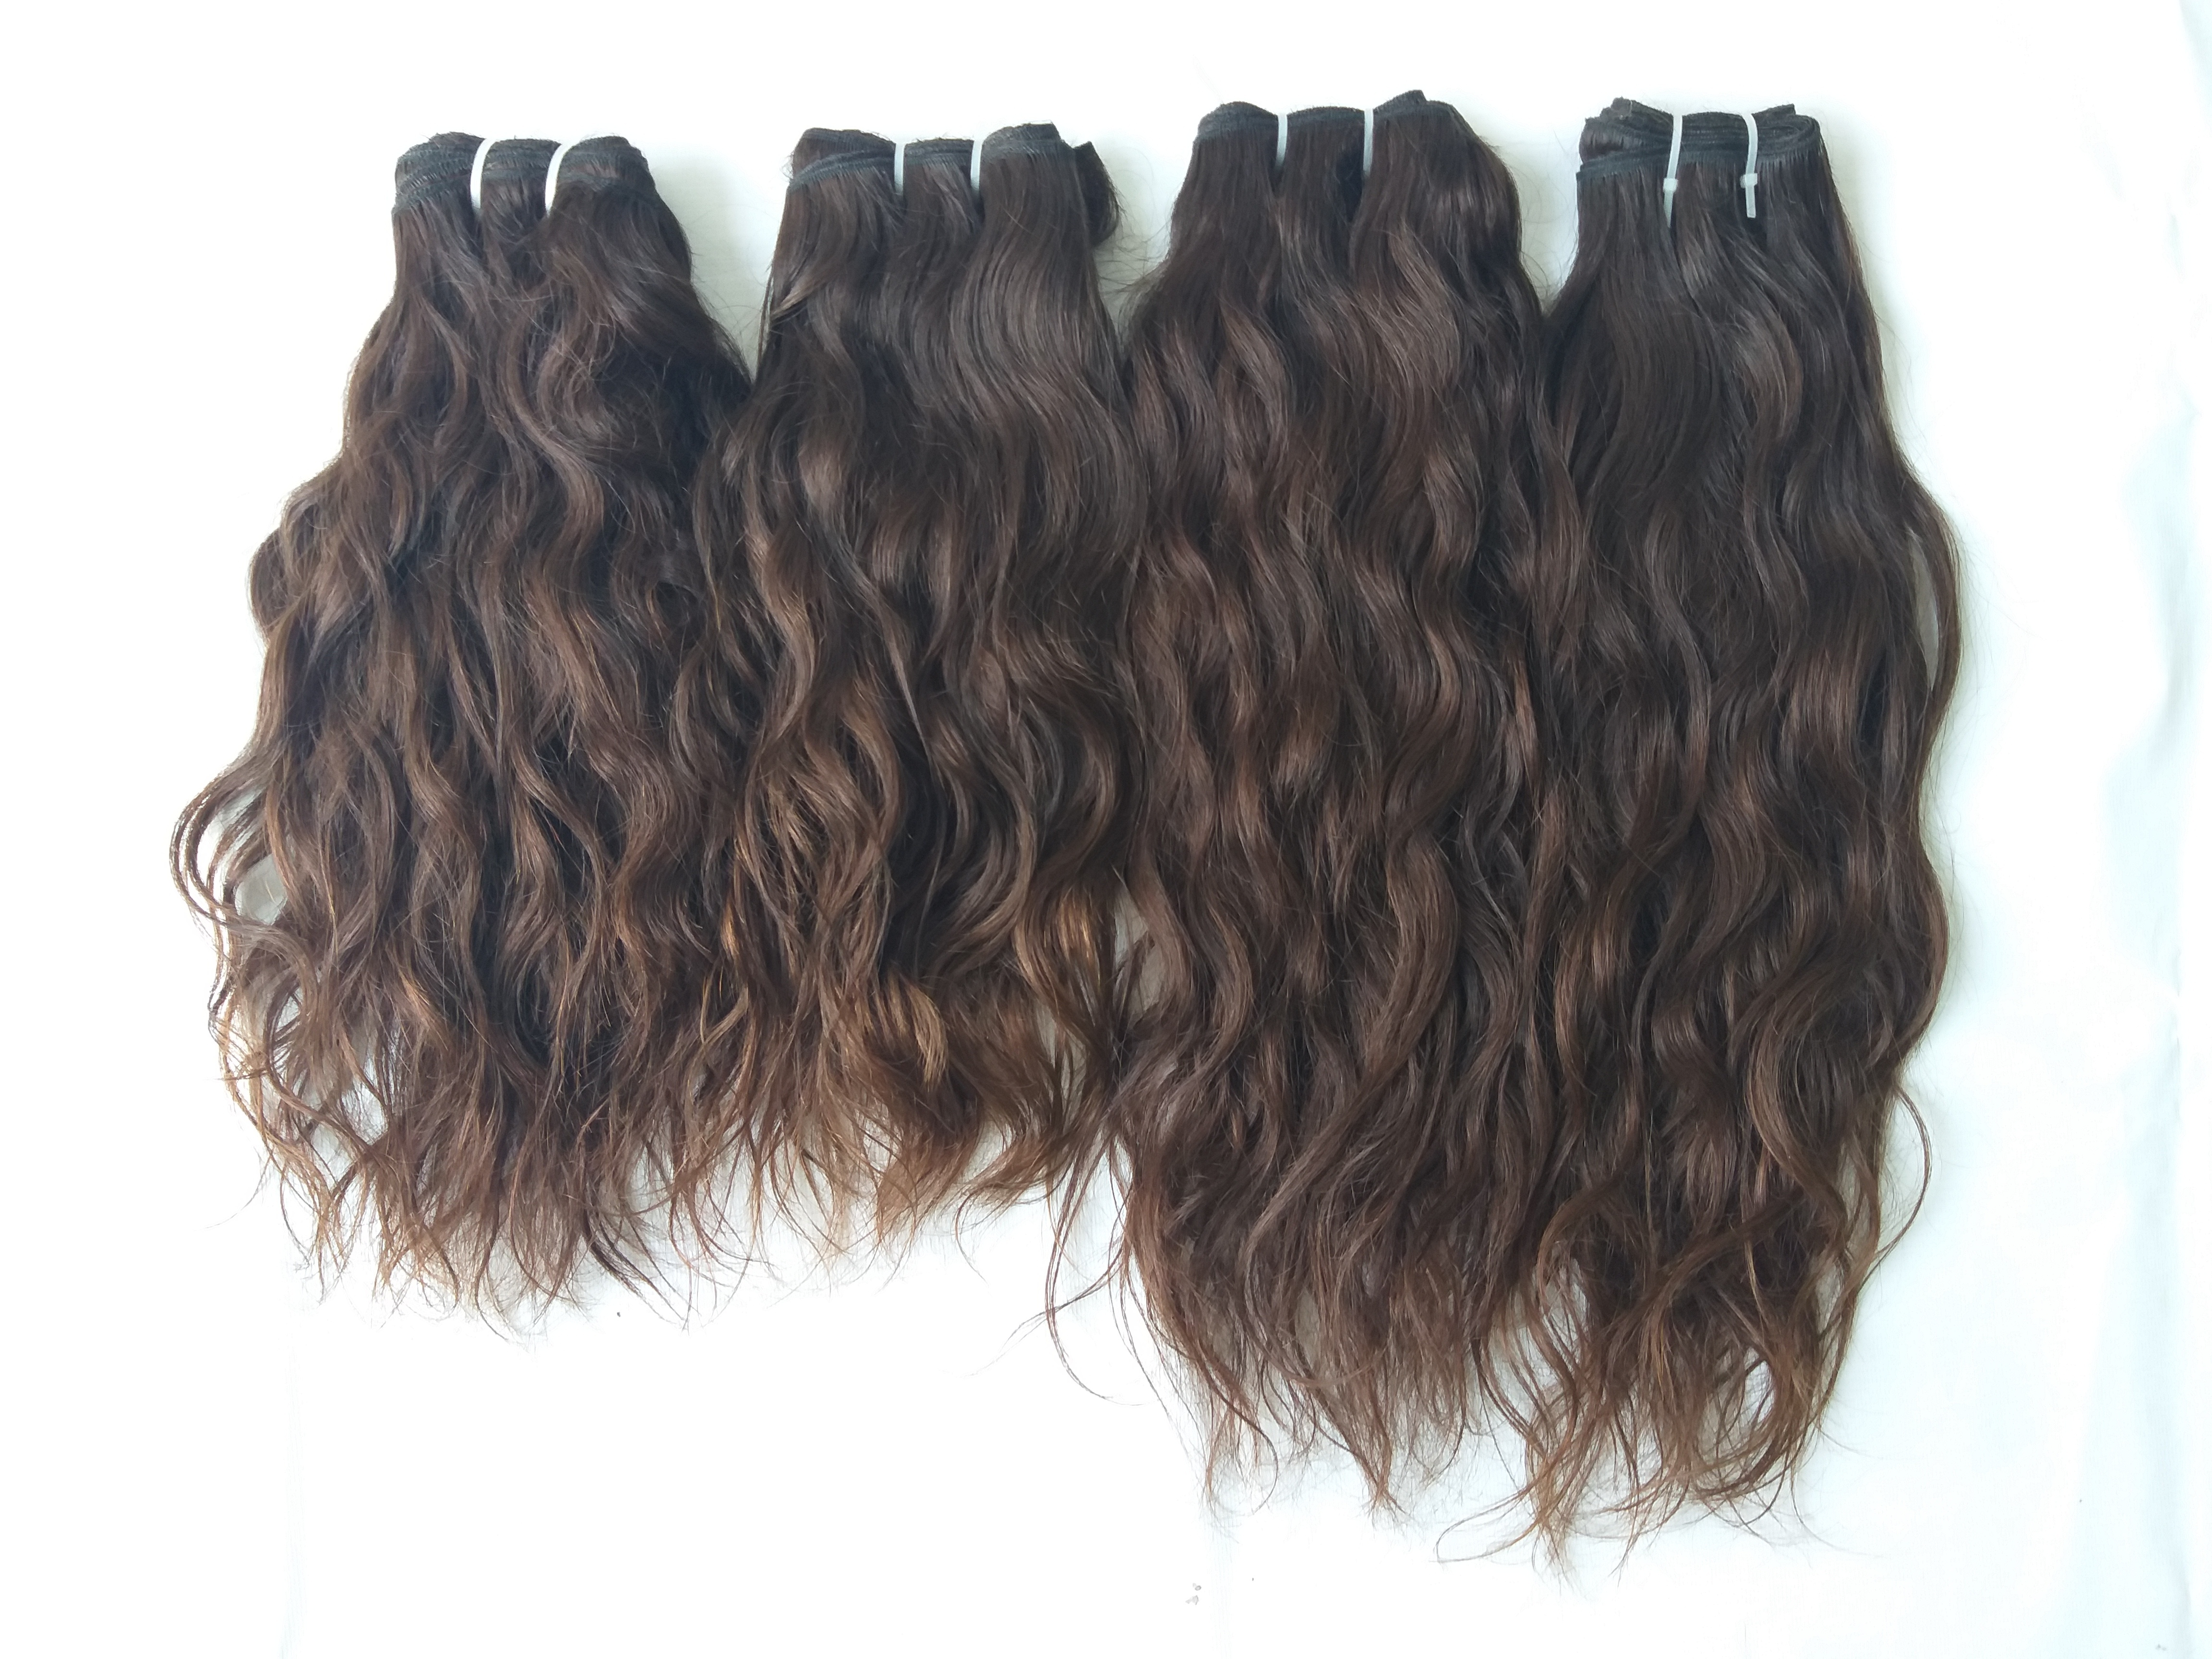 Raw Wavy Hair Extension,Top Quality Natural Black